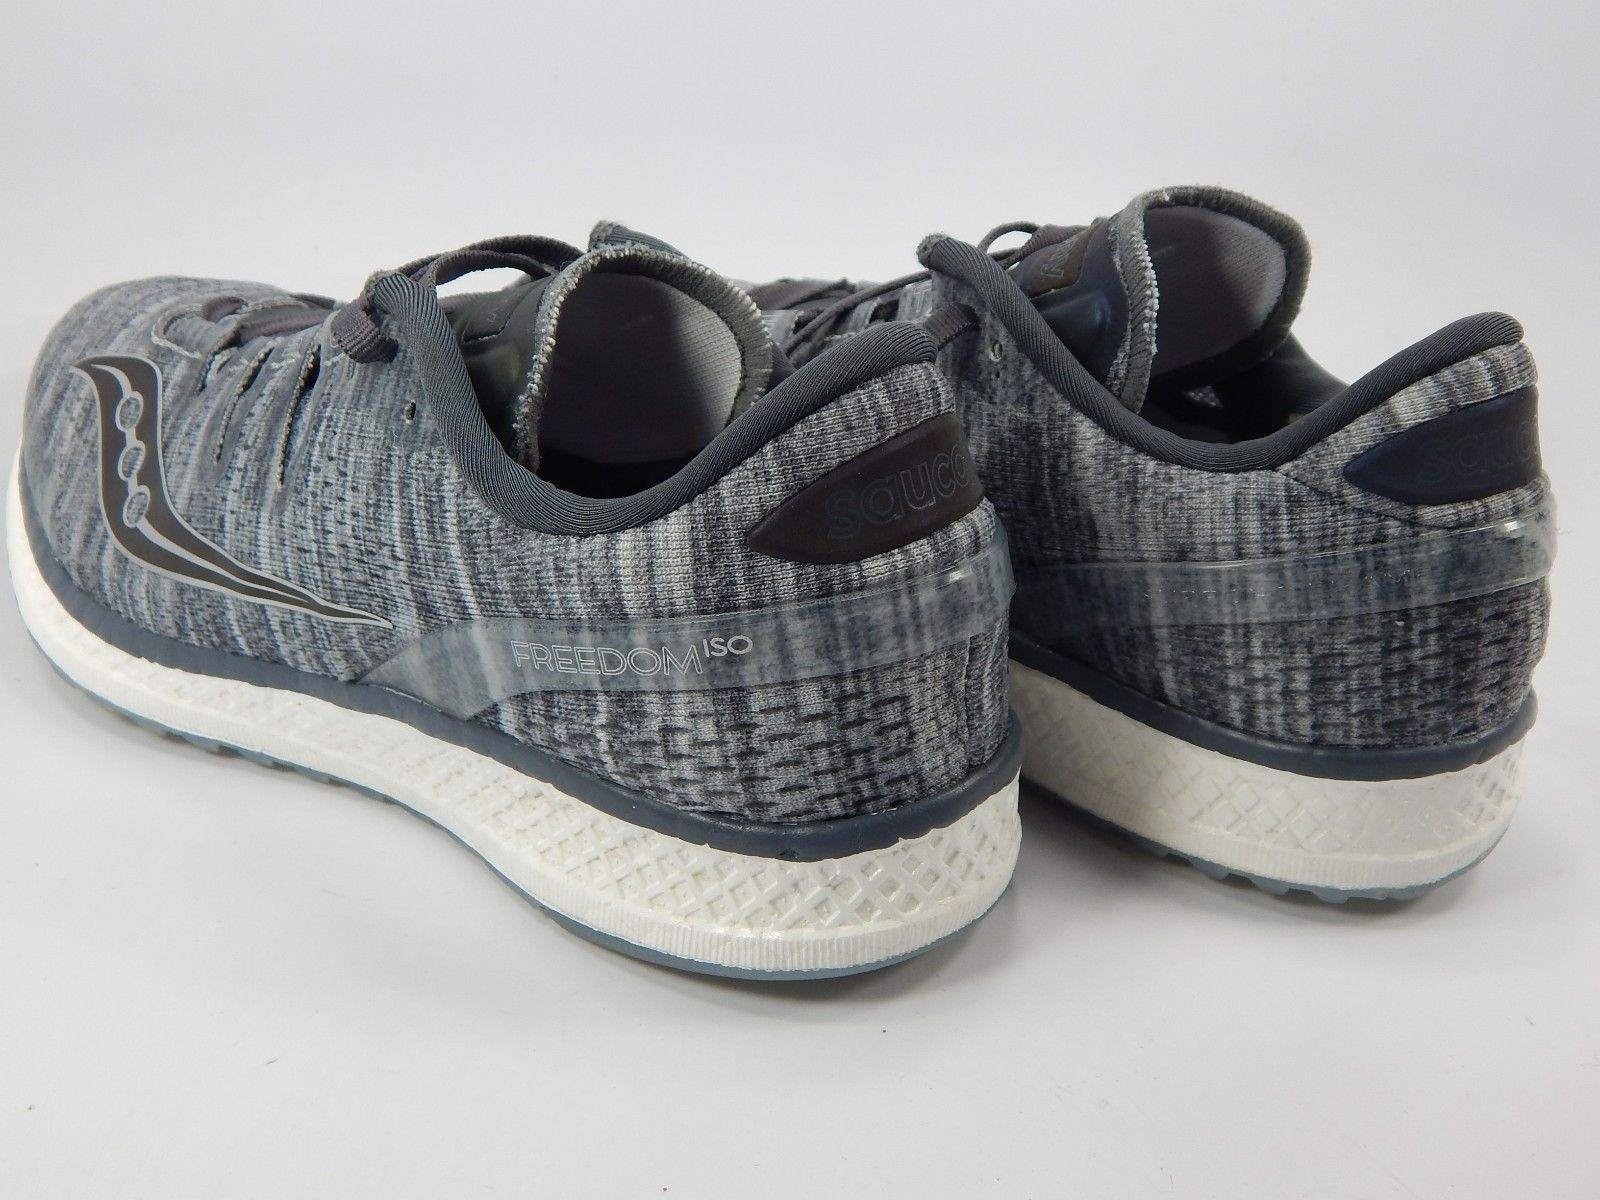 Saucony Freedom ISO Size 9 M (B) EU 40.5 Women's Running Shoes Silver S10355-20